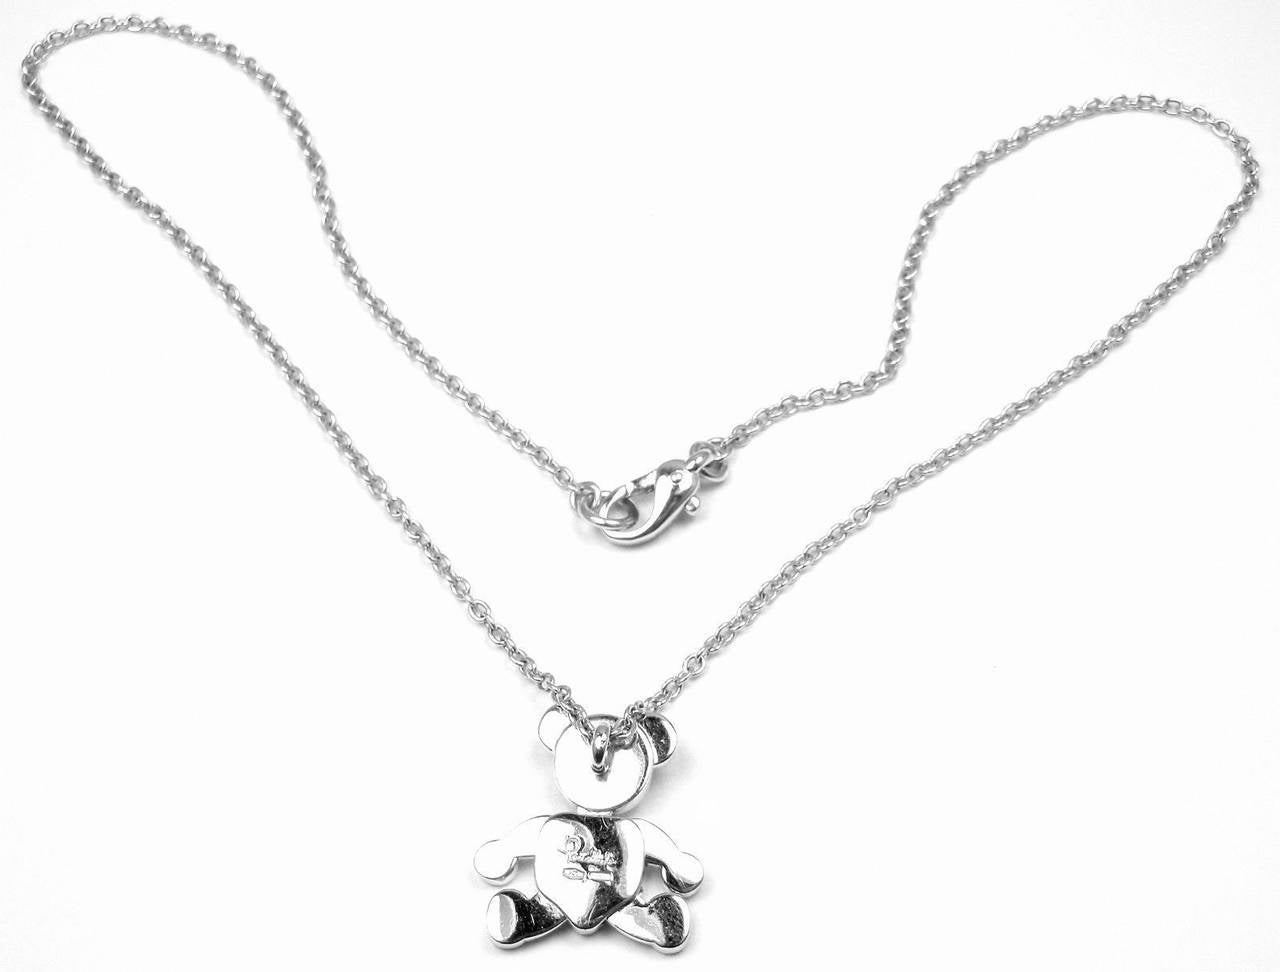 Pomellato Diamond Gold Teddy Bear Pendant Necklace 6